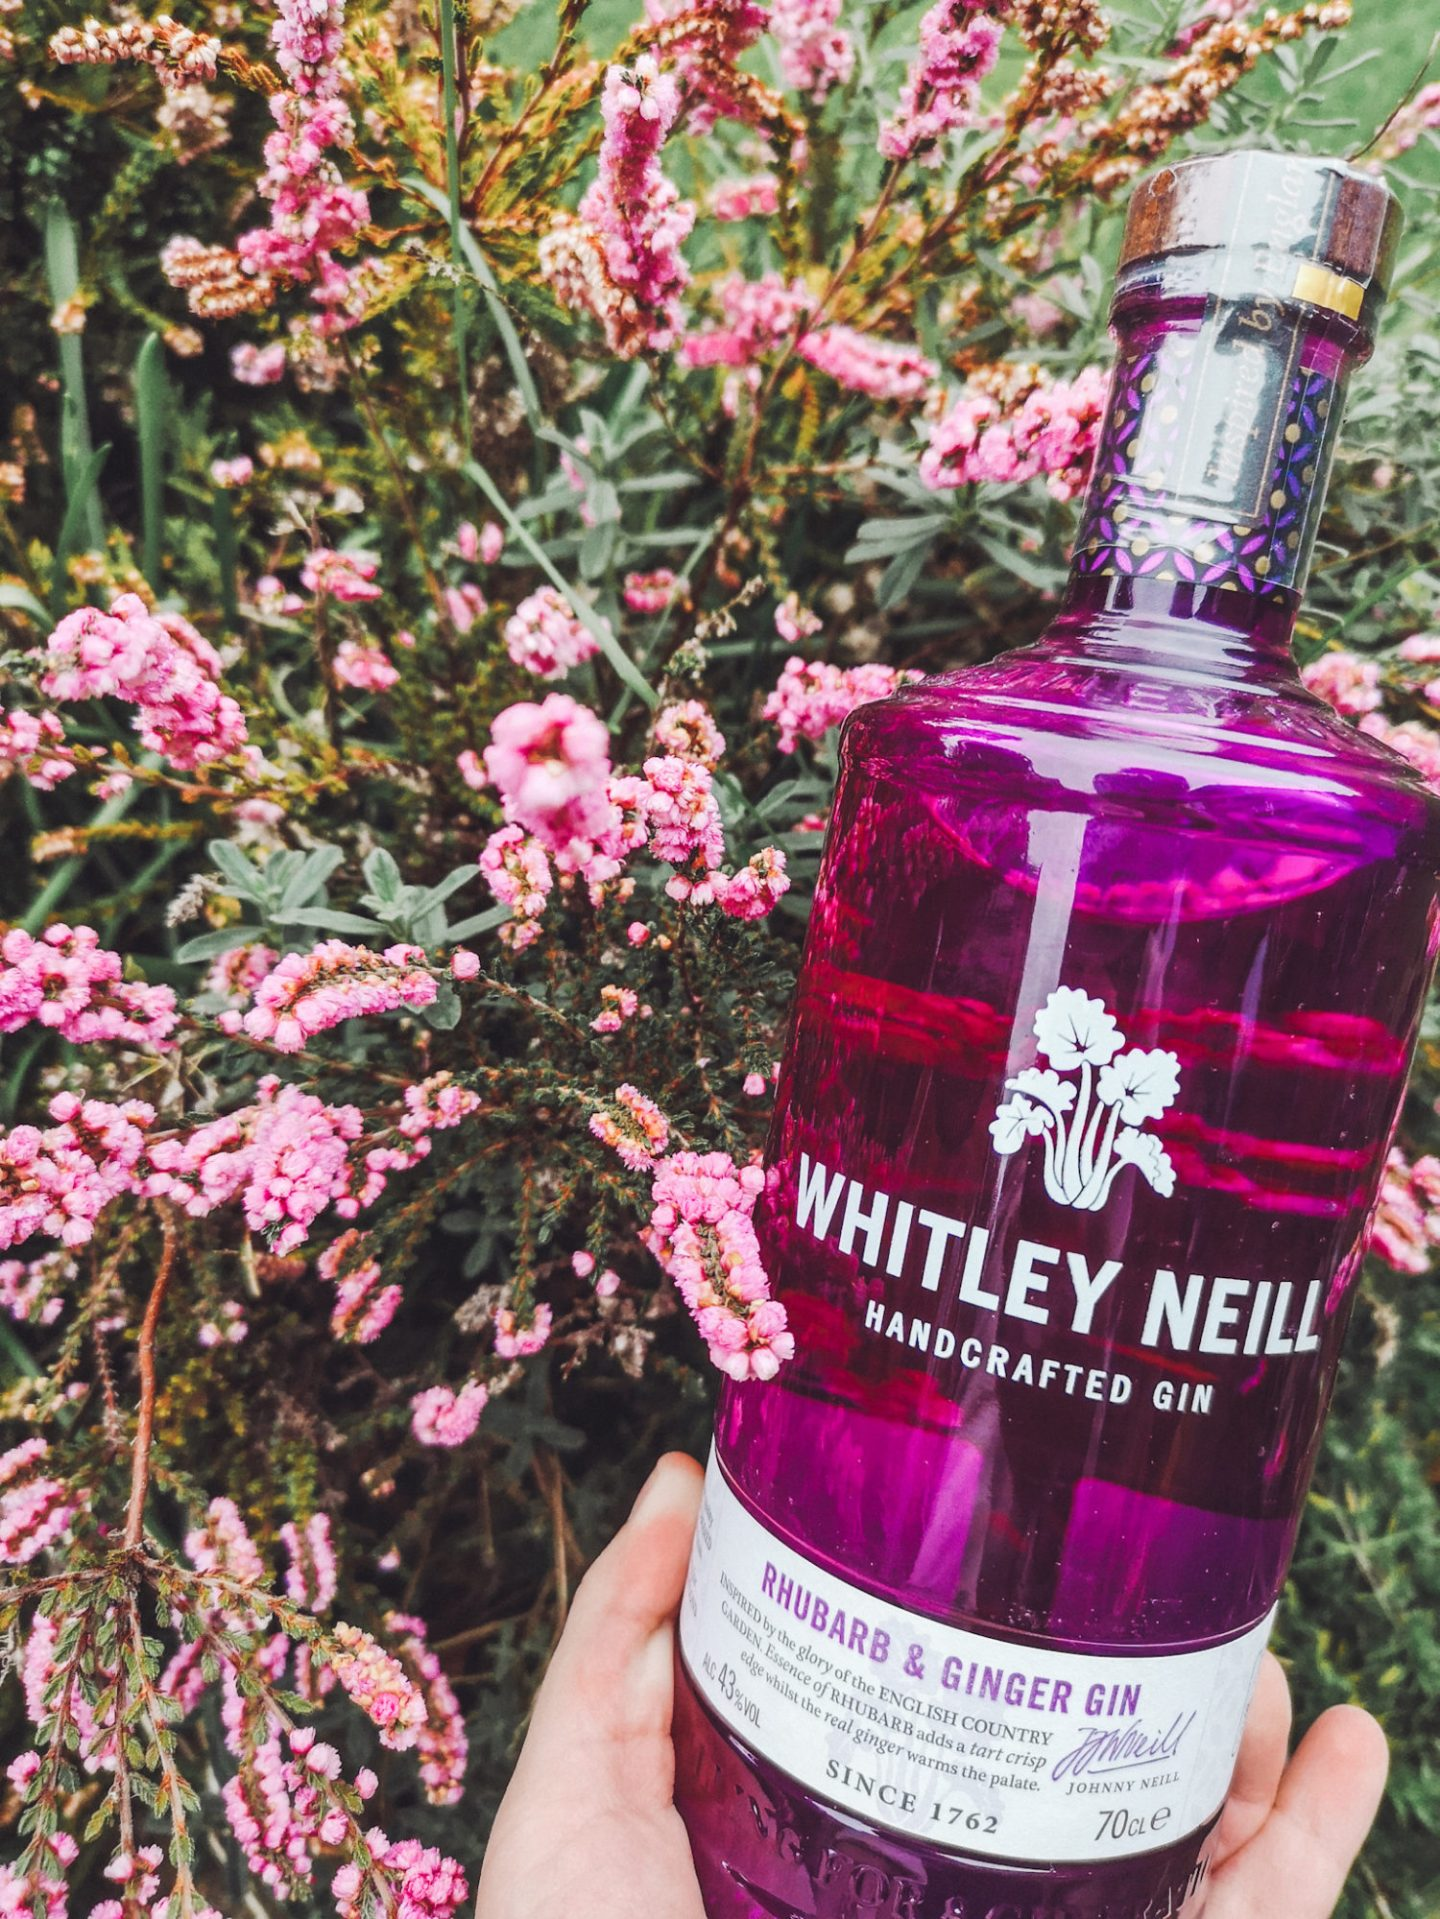 Is Whitley Neill Gin gluten free? Of course it is! Whitley Neill Rhubarb and Ginger is one of my favourite gins!